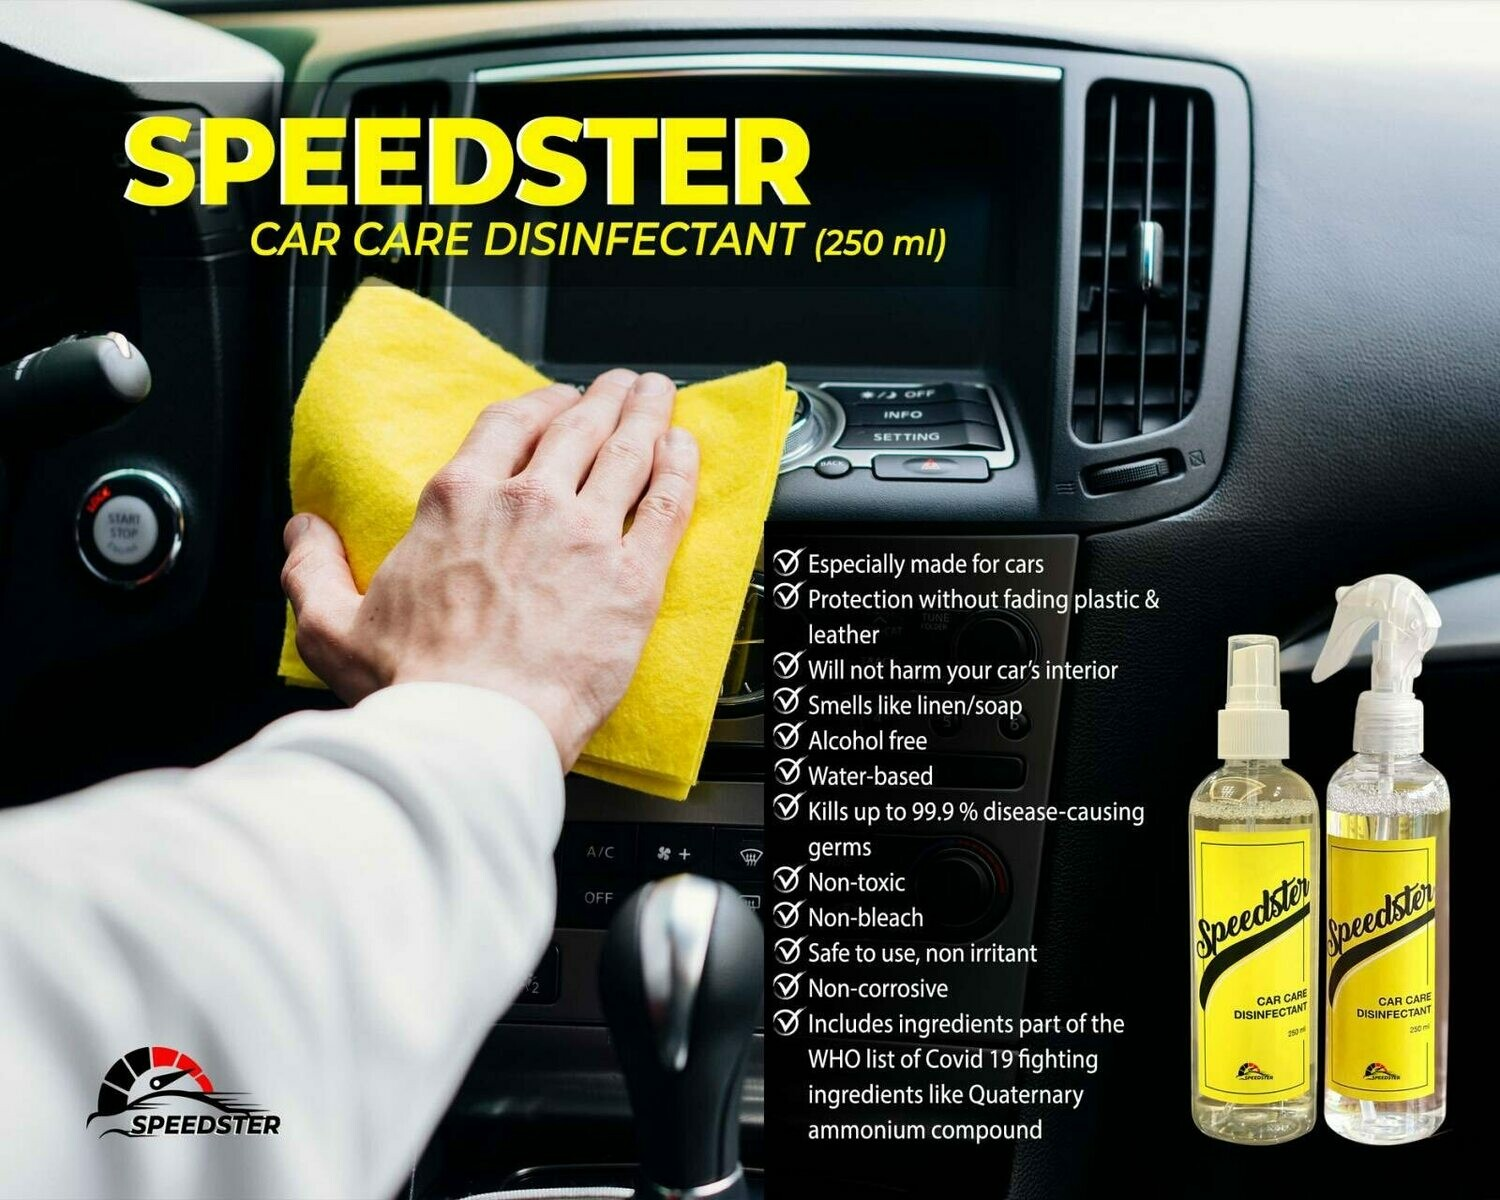 Speedster Car Care Disinfectant (250mL)